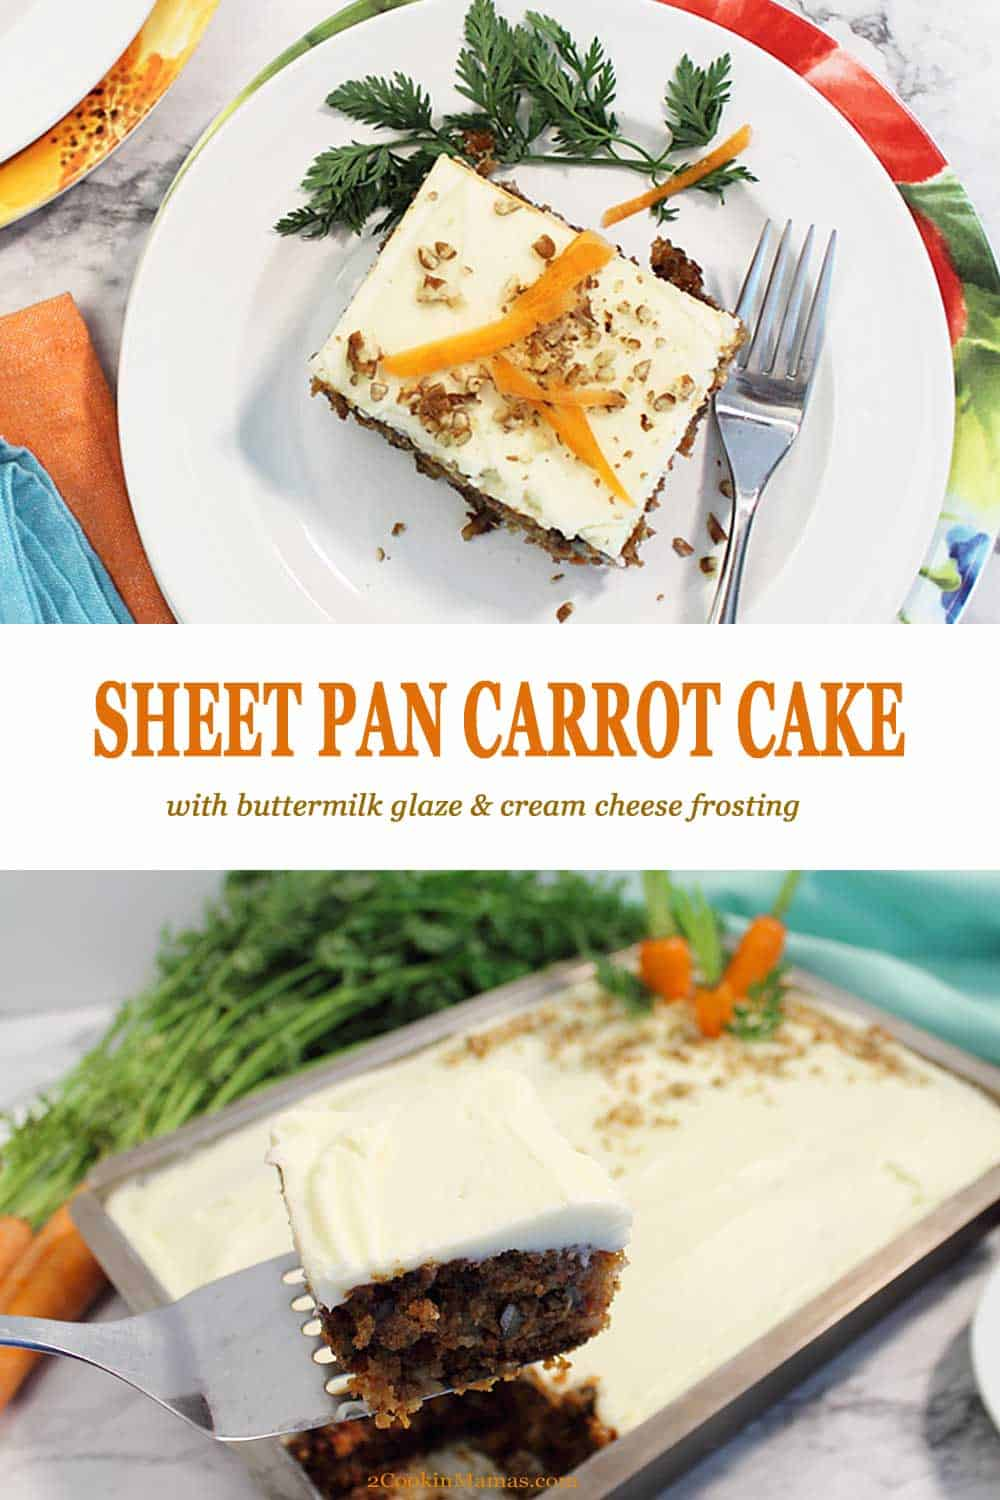 Sheet Pan Carrot Cake | 2 Cookin Mamas Spring is the perfect time to bake up this easy, moist Sheet Pan Carrot Cake. It's perfectly spiced and packed full of carrots, nuts and pineapple. There's a rich buttermilk glaze that adds another layer of flavor then the entire cake is covered with a creamy cream cheese frosting. It's the perfect dessert for Easter, Mother's Day or any time. #carrotcake #cake #easy #sheetpancake #carrots #nuts #pineapple #dessert #Easter #MothersDay #recipe #creamcheesefrosting #buttermilk #fromscratch